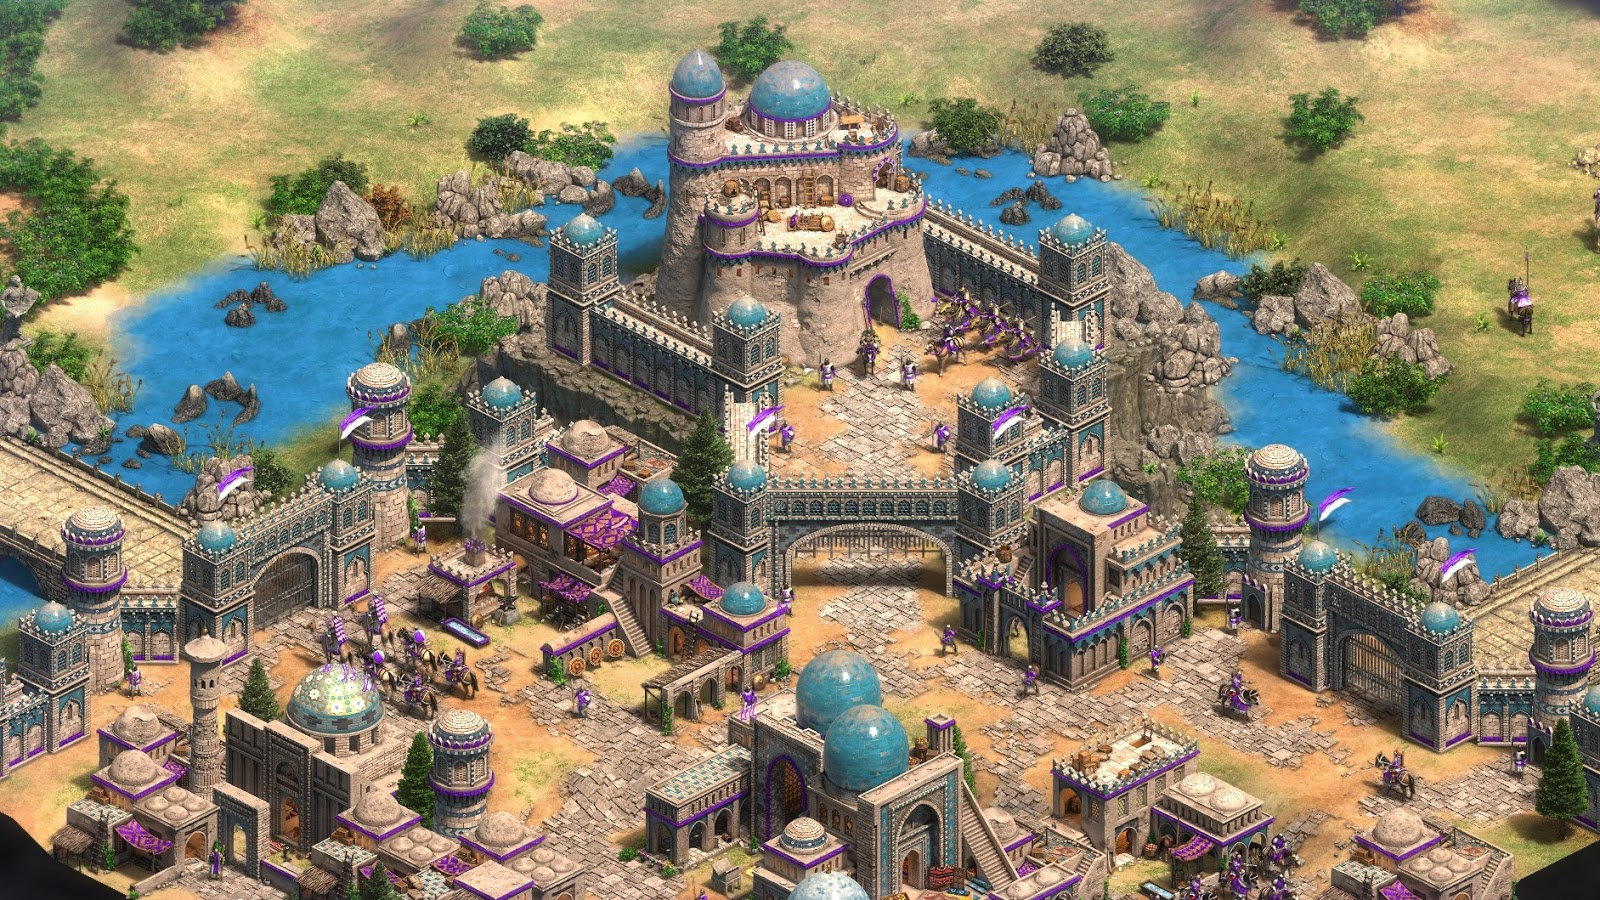 Age of empires 2 game play online walking dead video games season 2